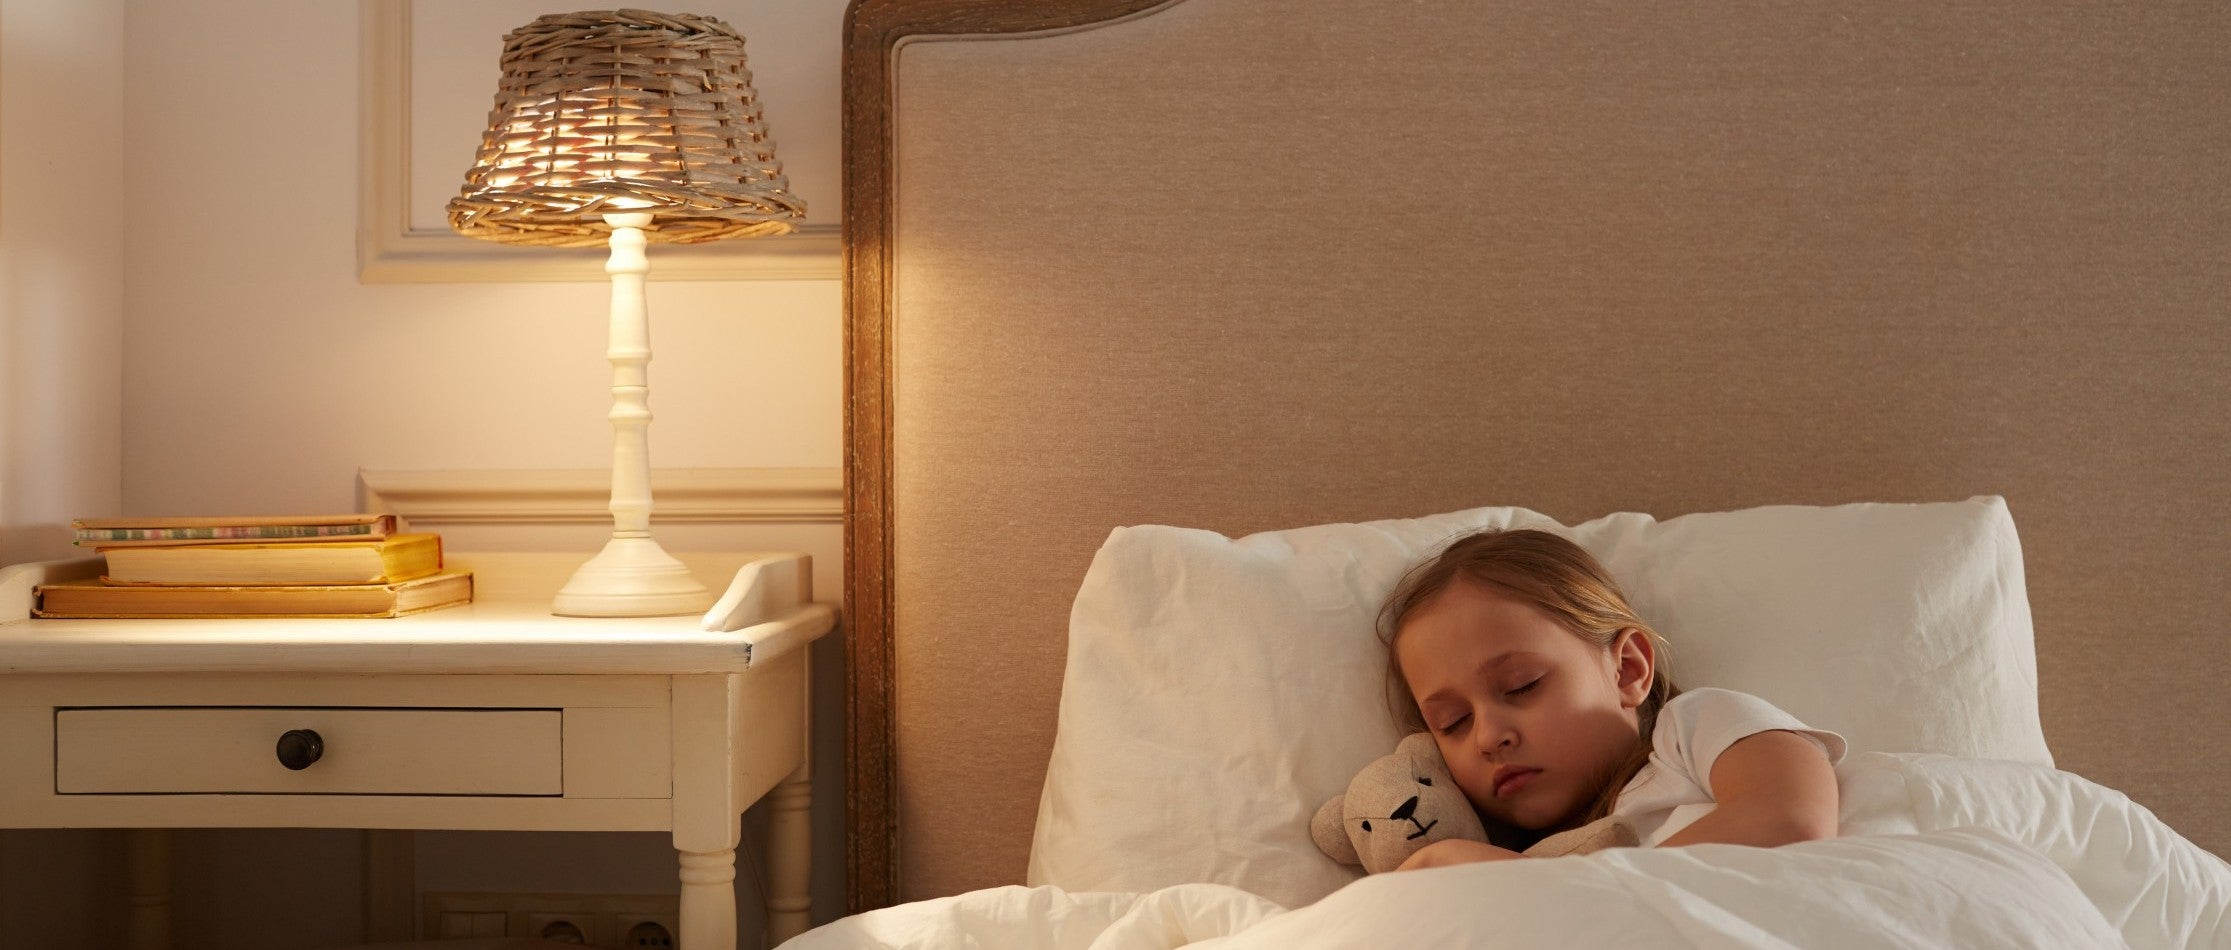 Little girl sleeping in bed with her teddy bear and bedside night on.